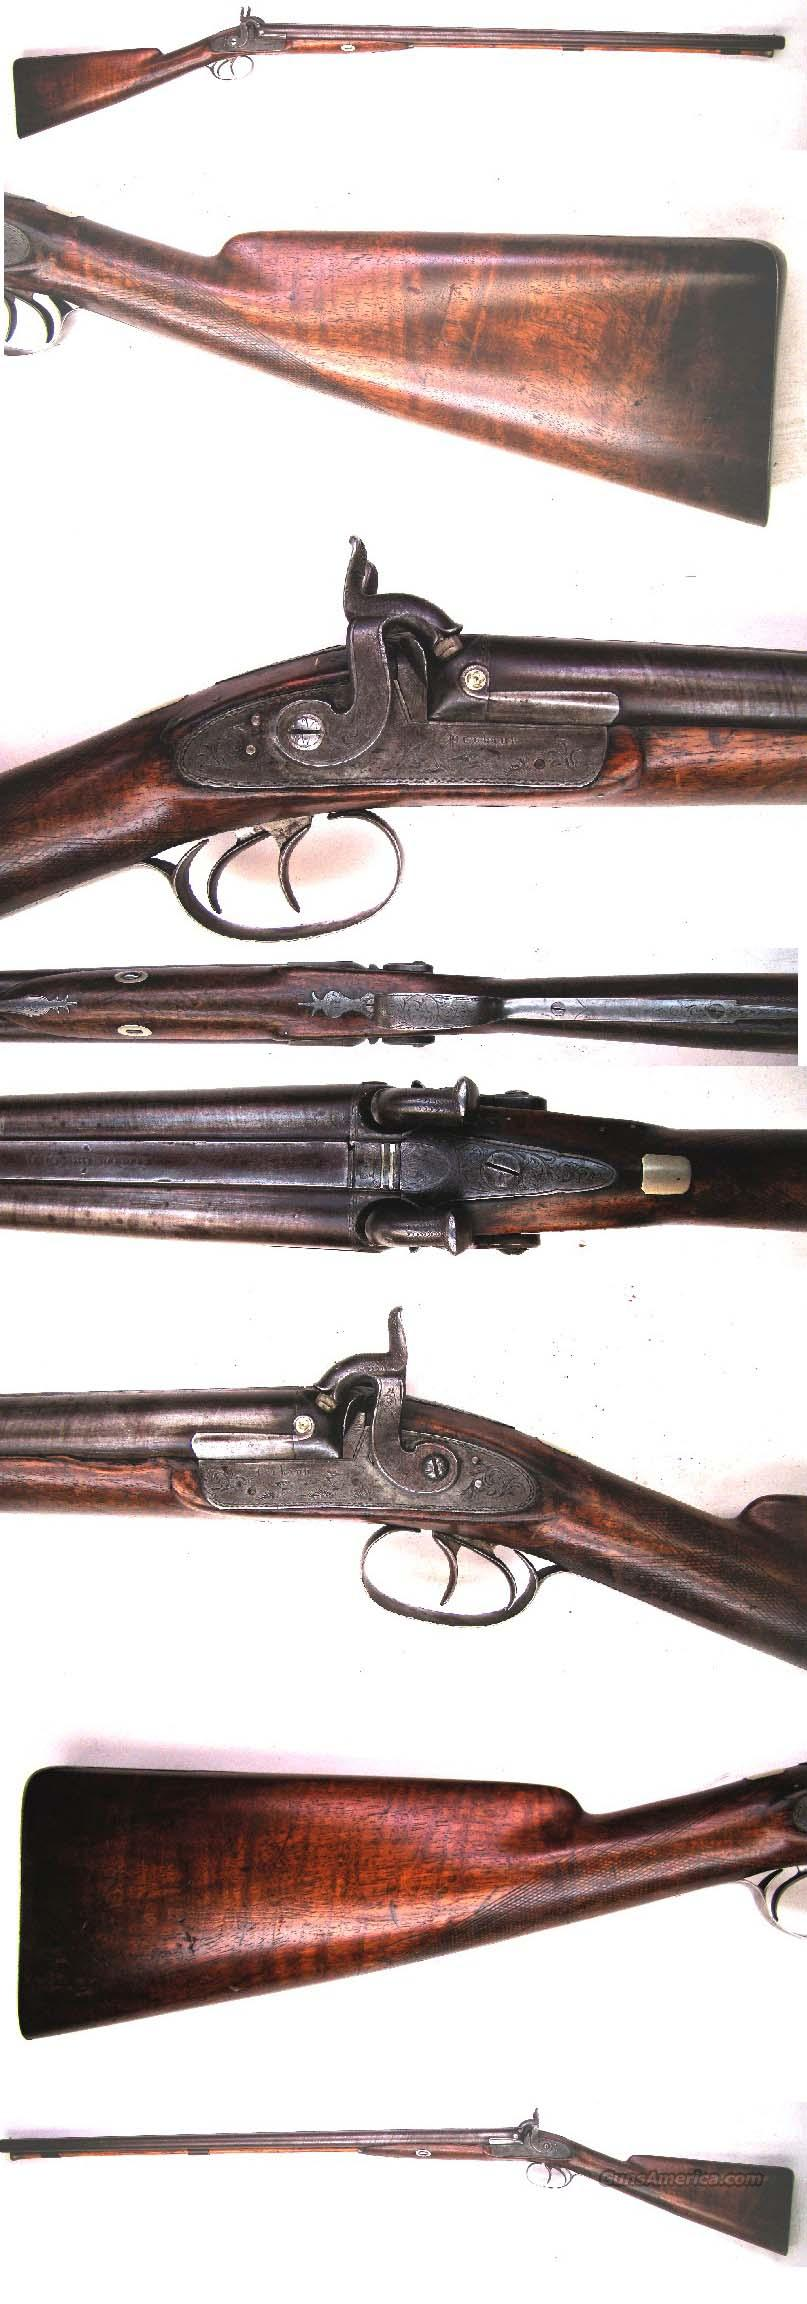 English Percussion Shotgun  Guns > Shotguns > Muzzleloading Pre-1899 Shotguns